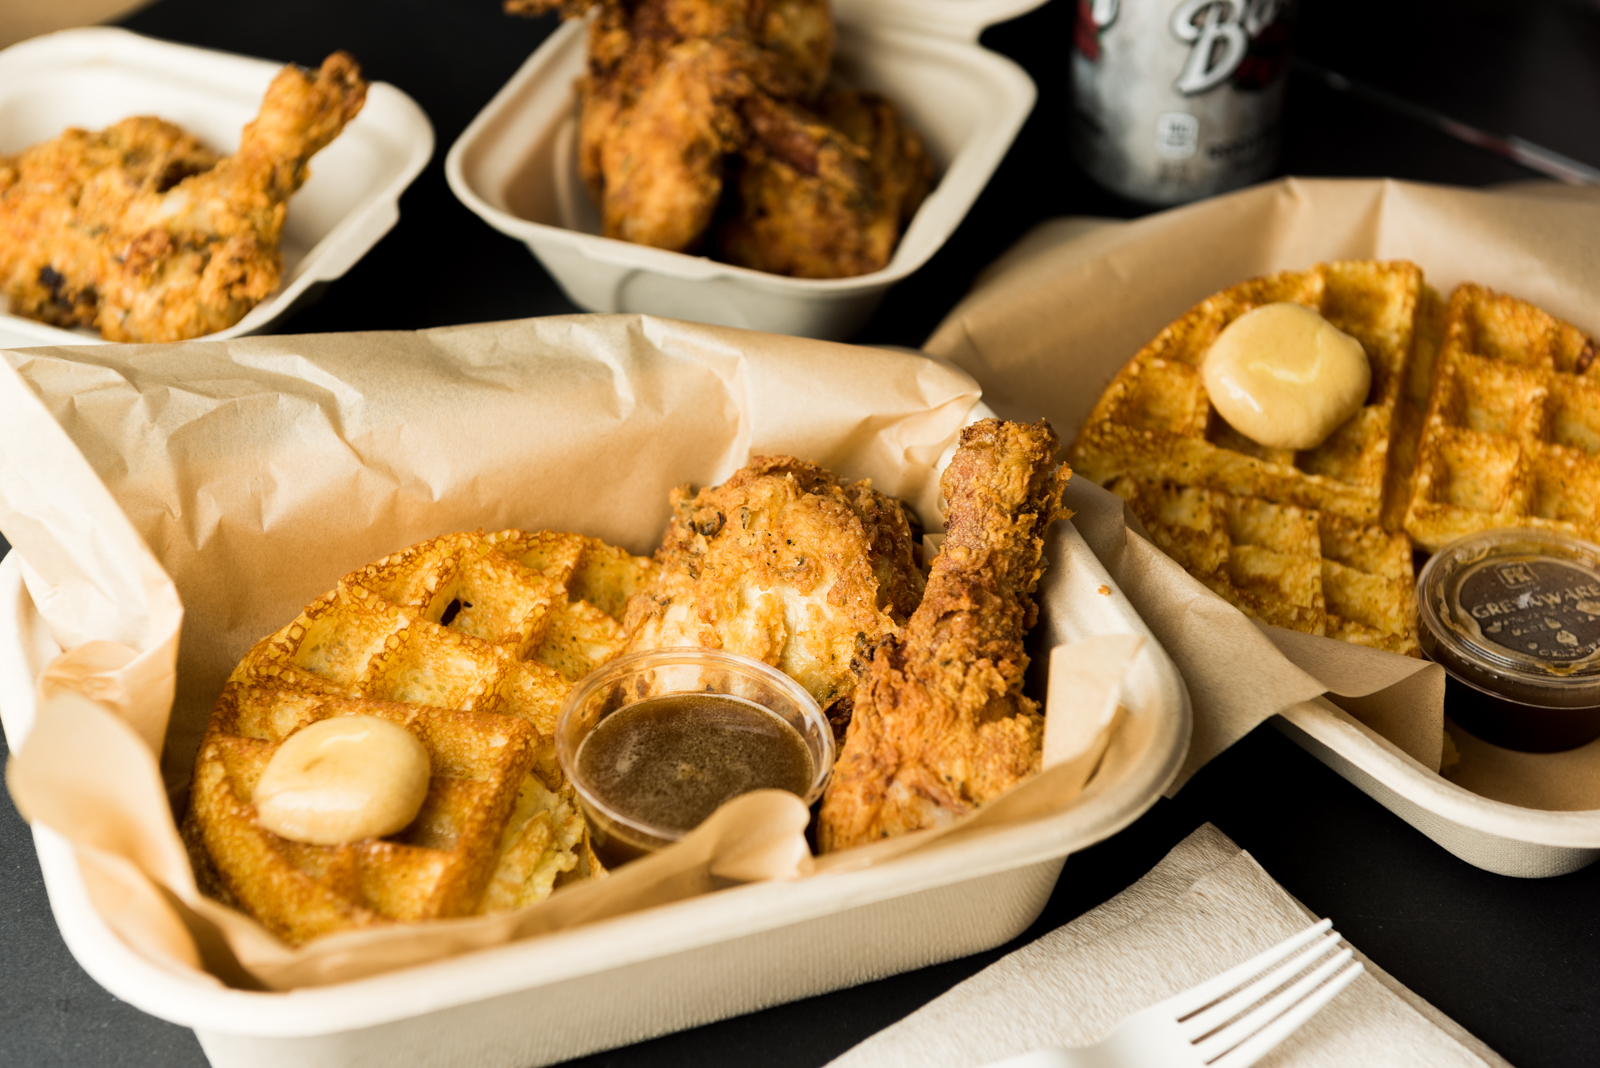 Brown Sugar Kitchen Opens for Chicken and Waffles in the Ferry Building